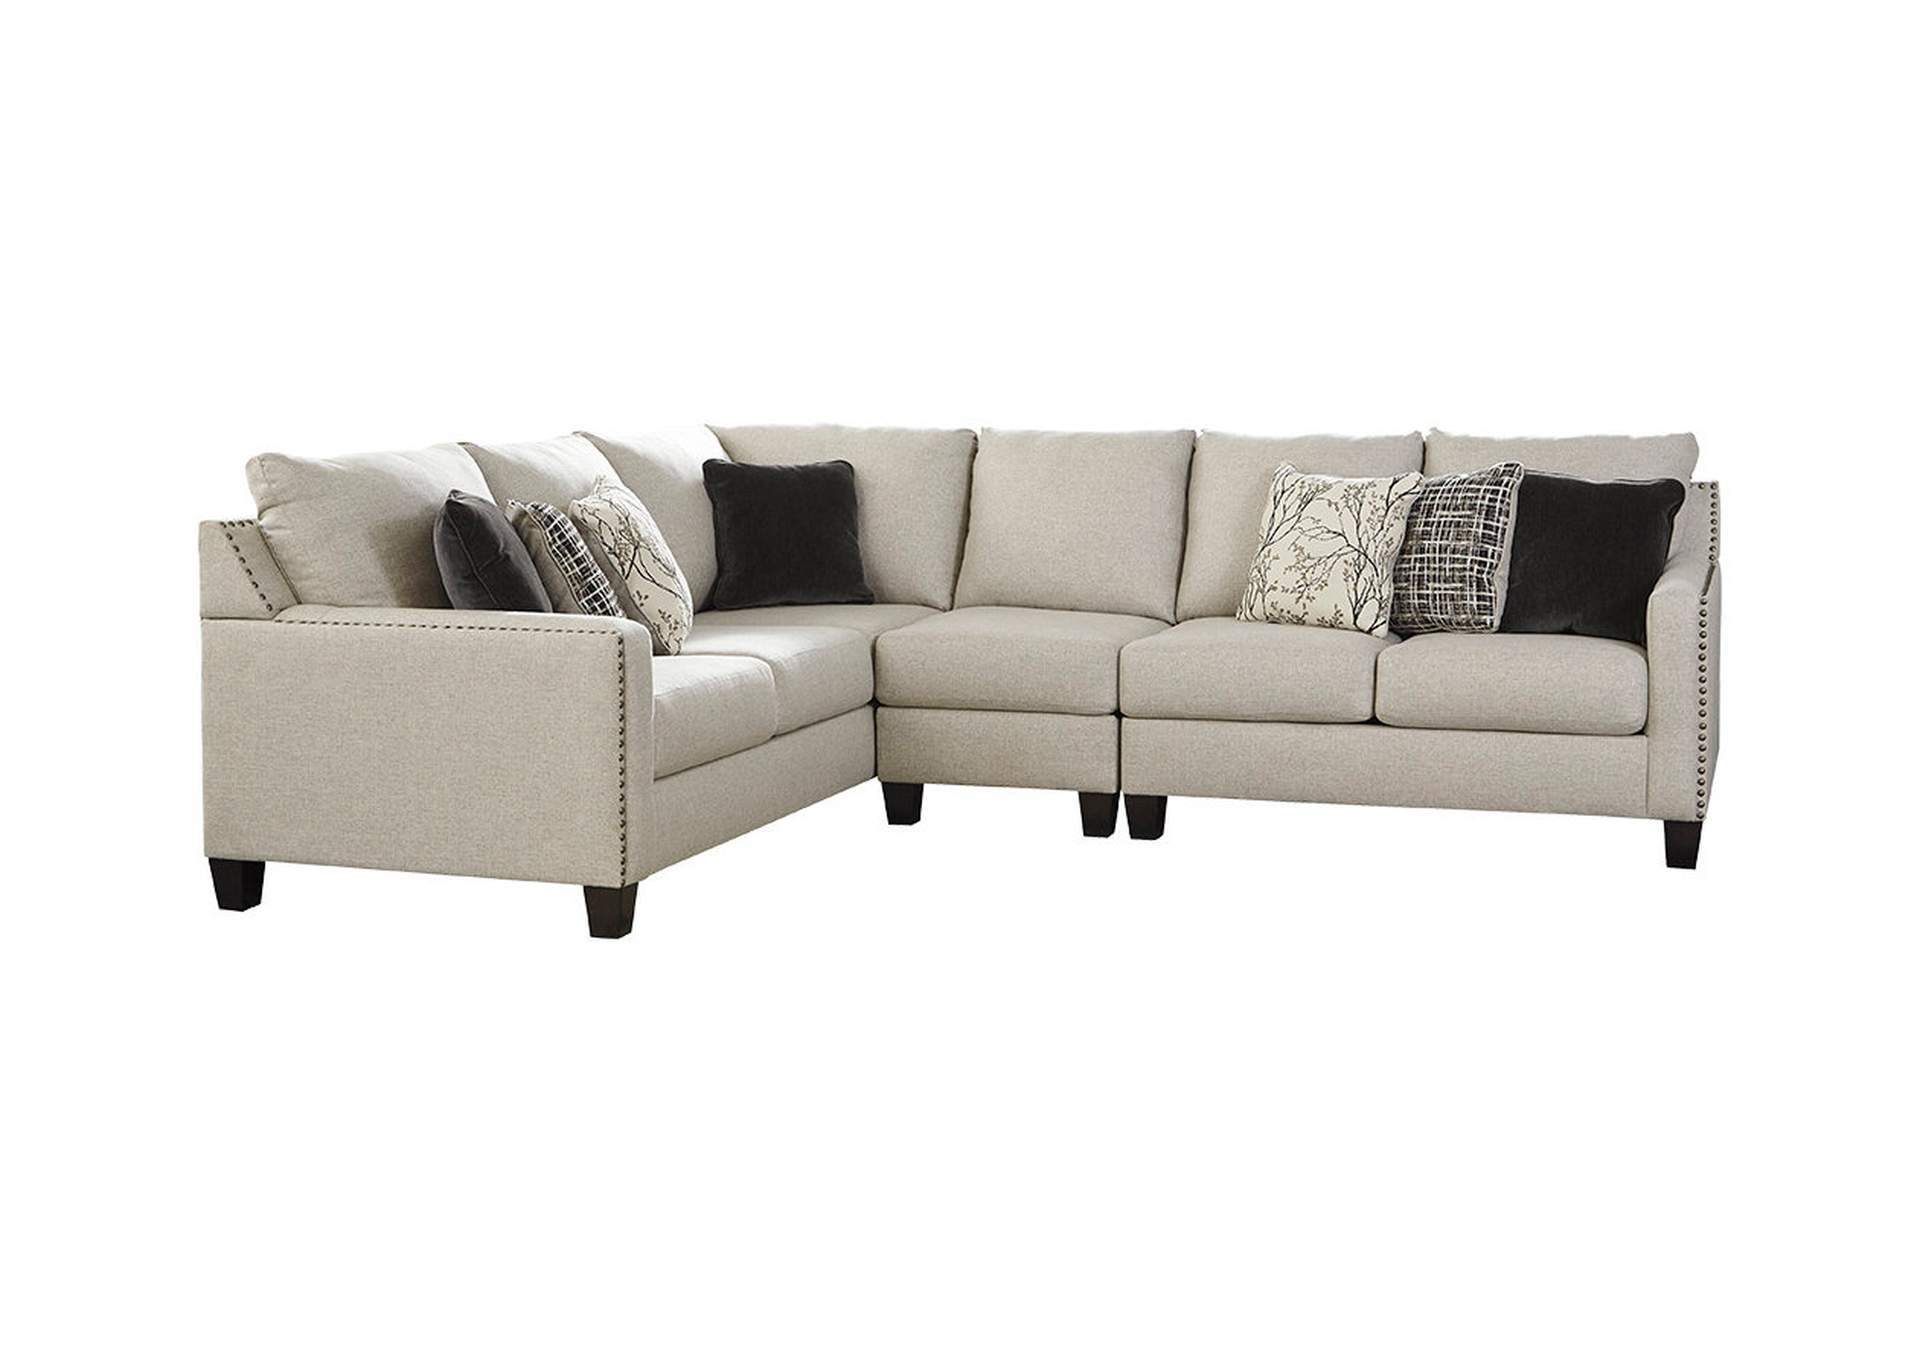 Hallenberg Fog RAF Chaise Sectional,Signature Design By Ashley